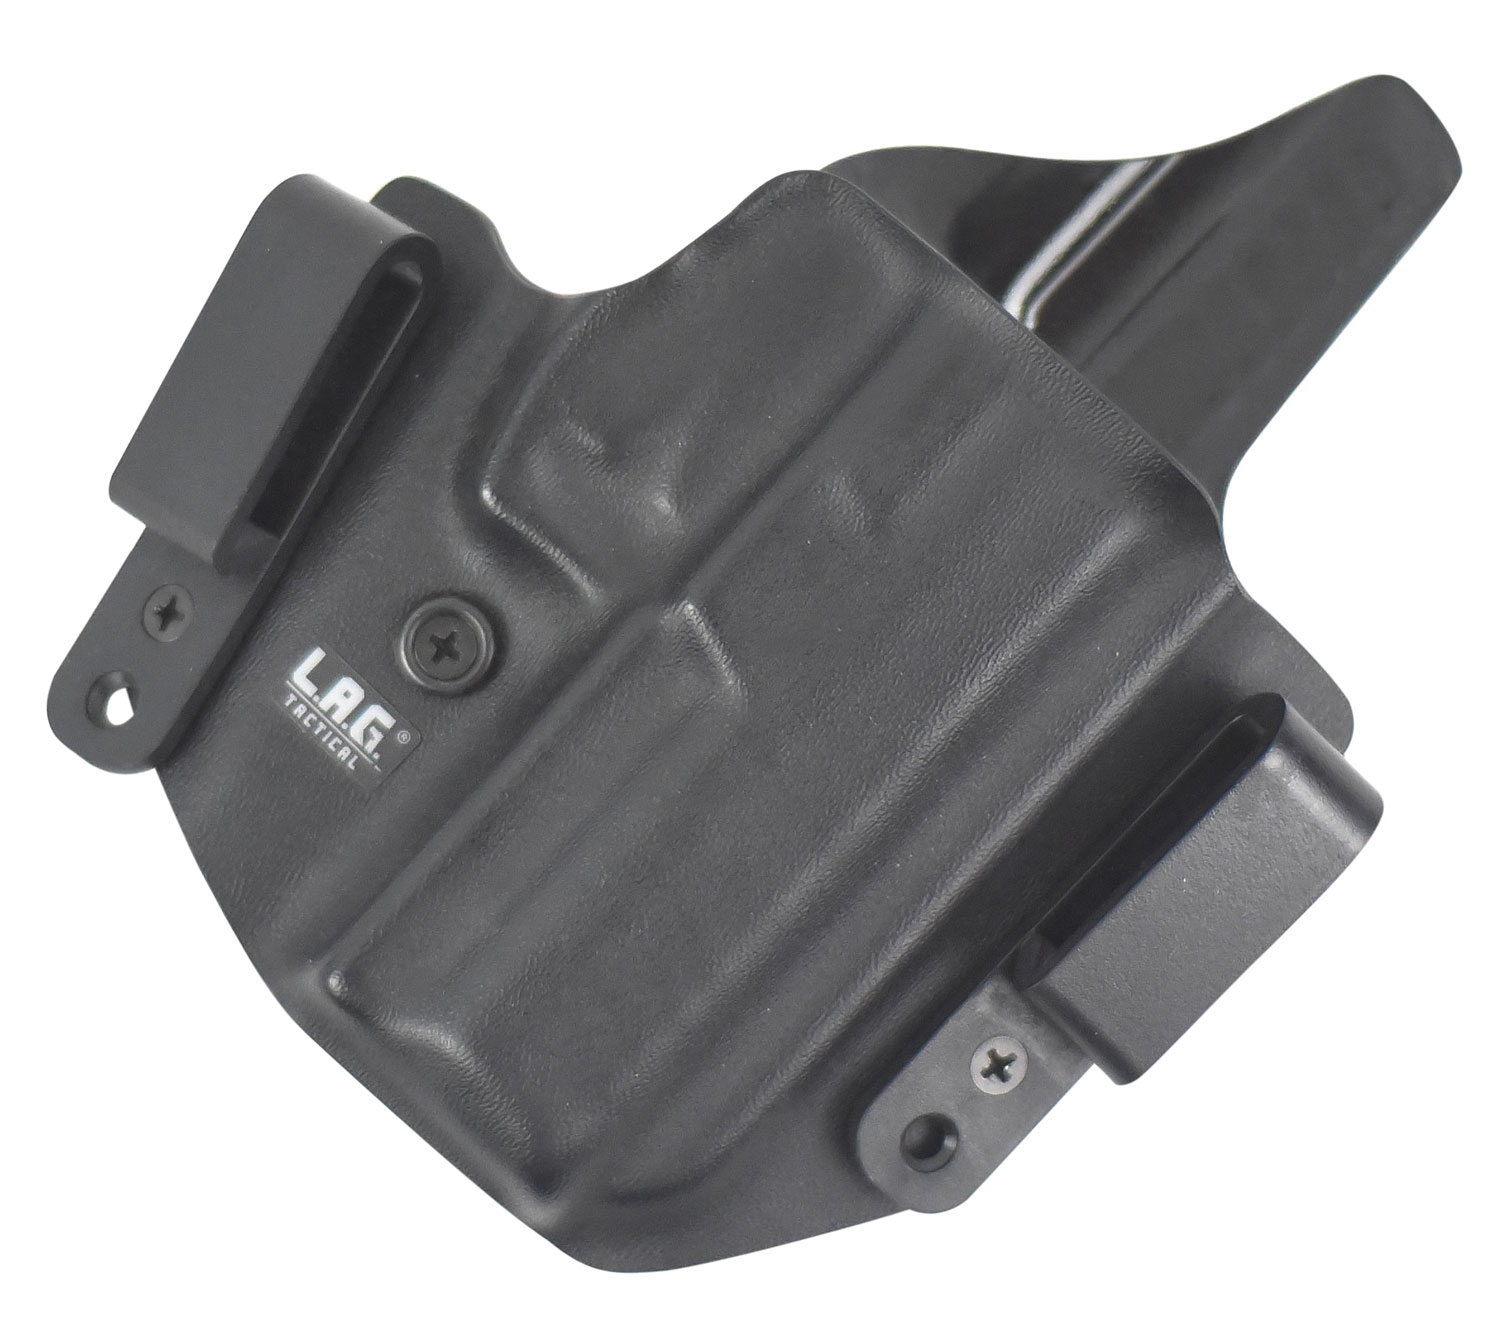 LAG TACTICAL INC 1053 Defender  Inside-Outisde-The-Waistband Holster Glock 43 Kydex Black